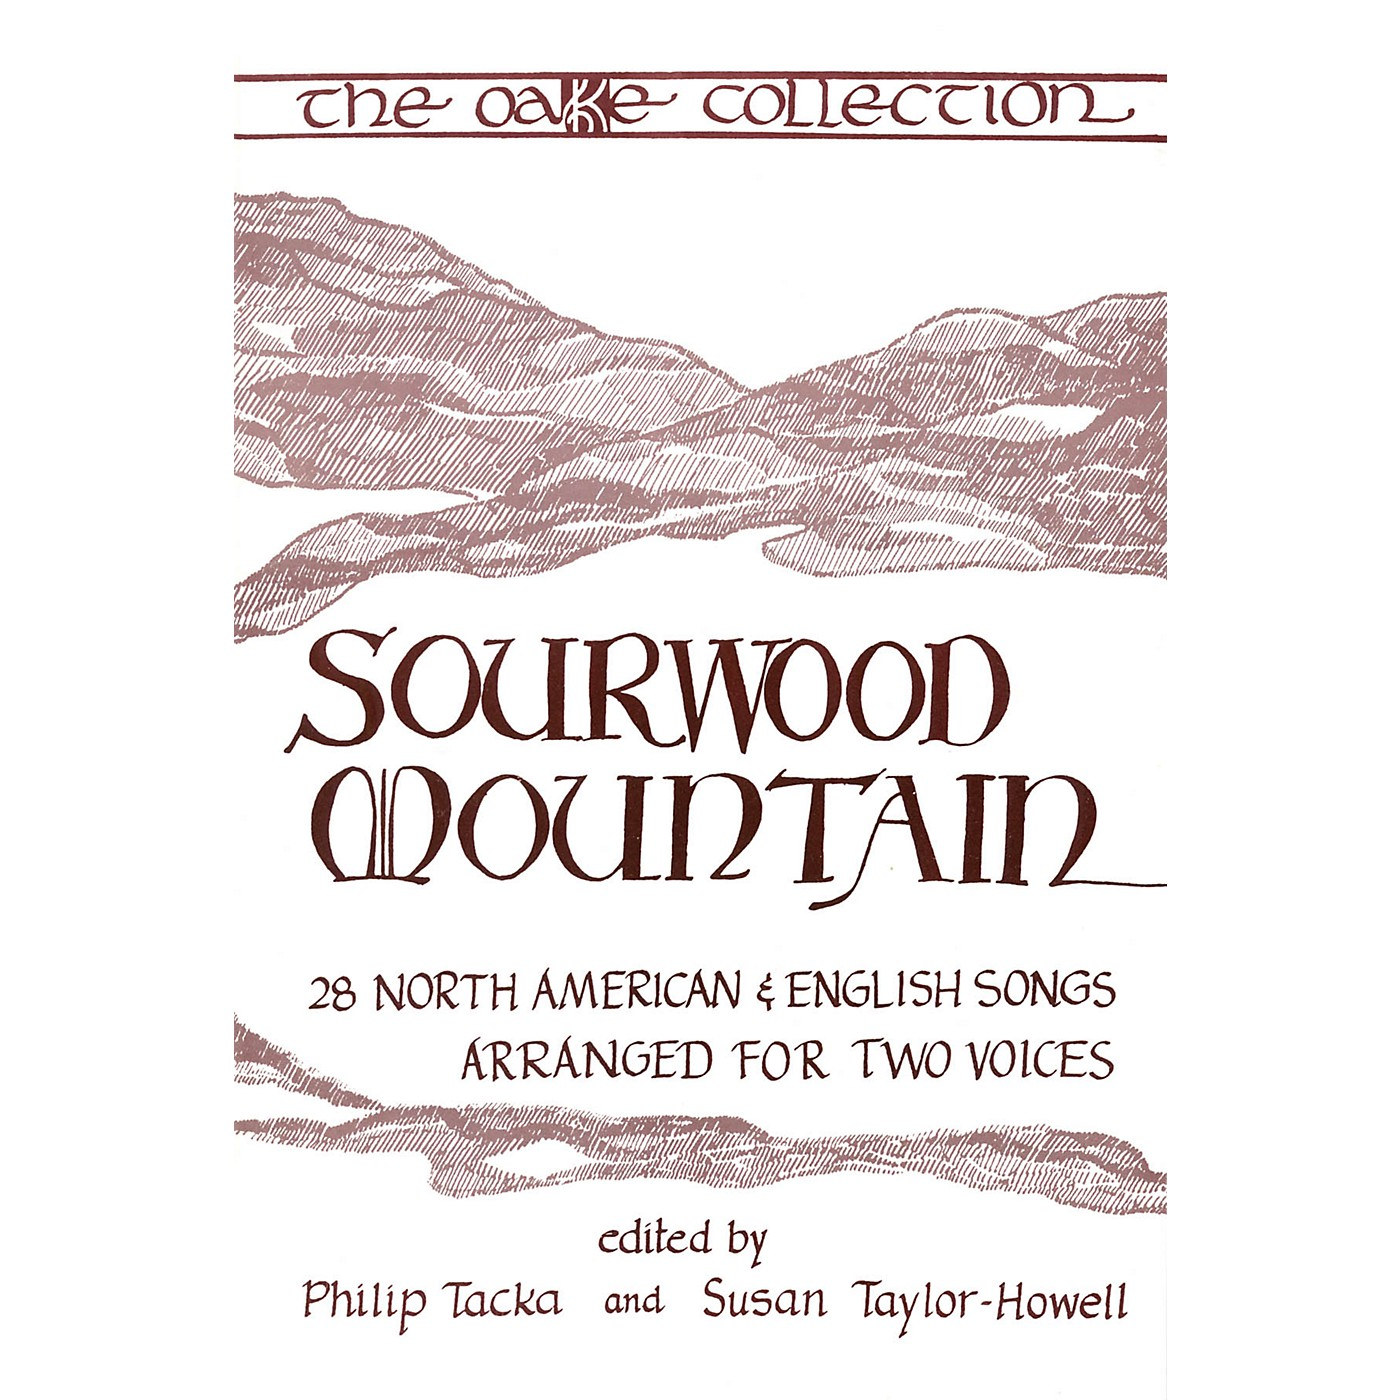 Boosey and Hawkes Sourwood Mountain (28 North American & English Songs arranged for Two Voices) 2-Part by Philip Tacka thumbnail